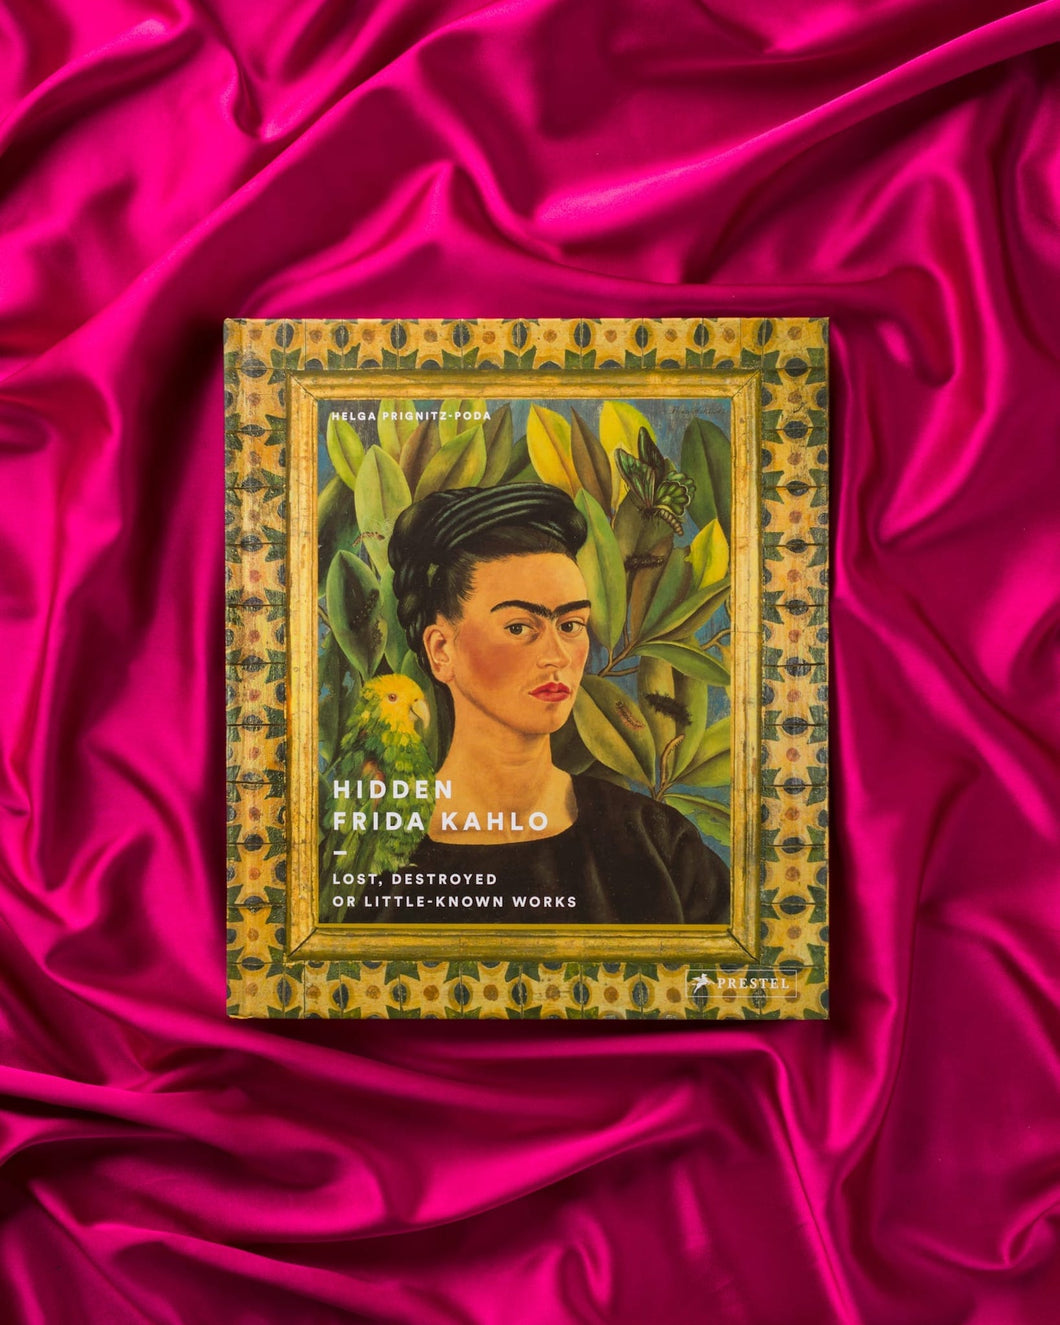 Hidden Frida Kahlo: Lost, Destroyed or Little Known Works